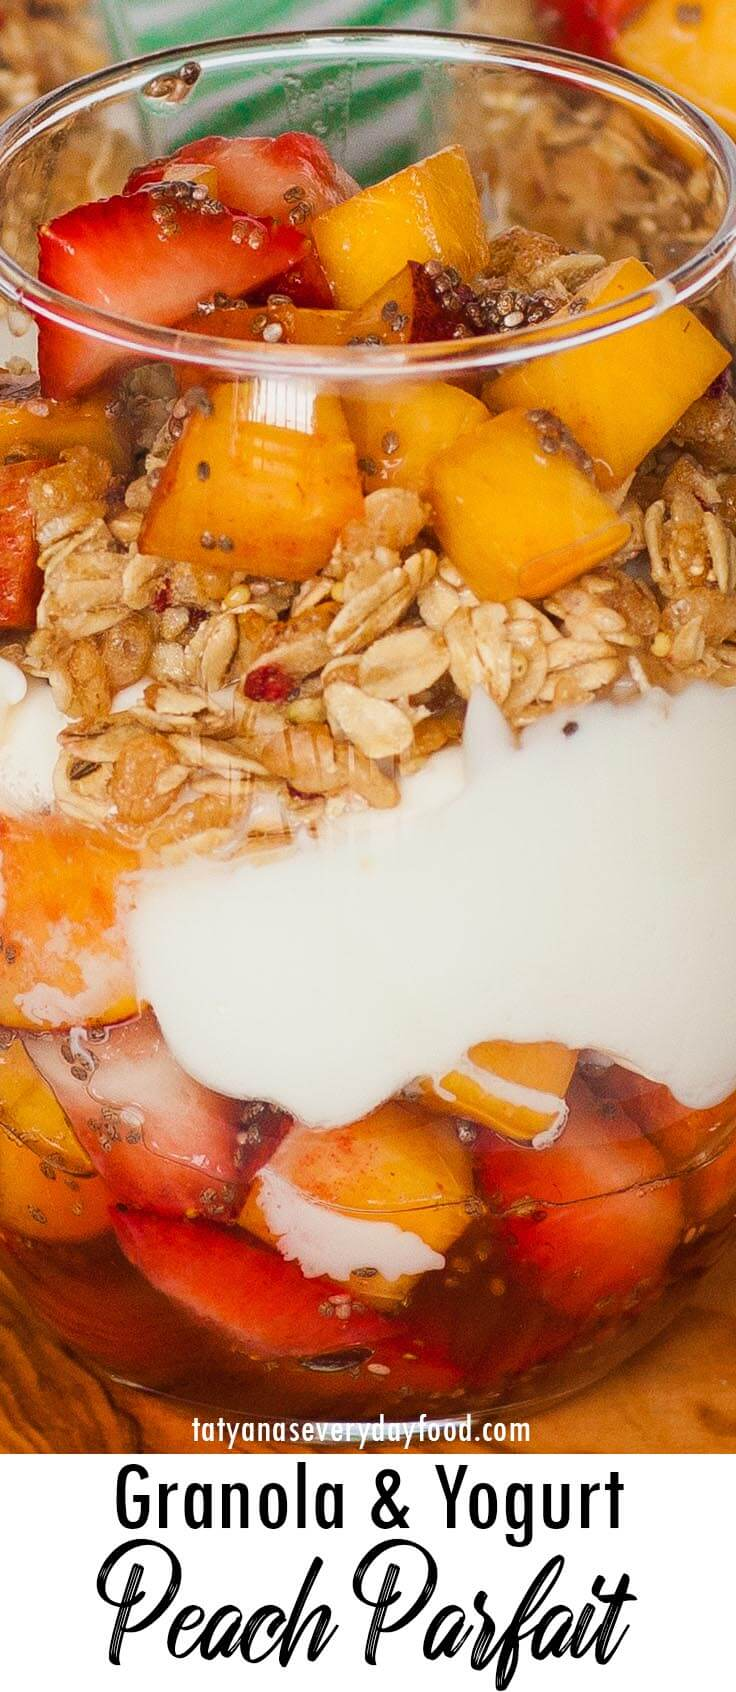 Granola & Peach Yogurt Parfait video recipe